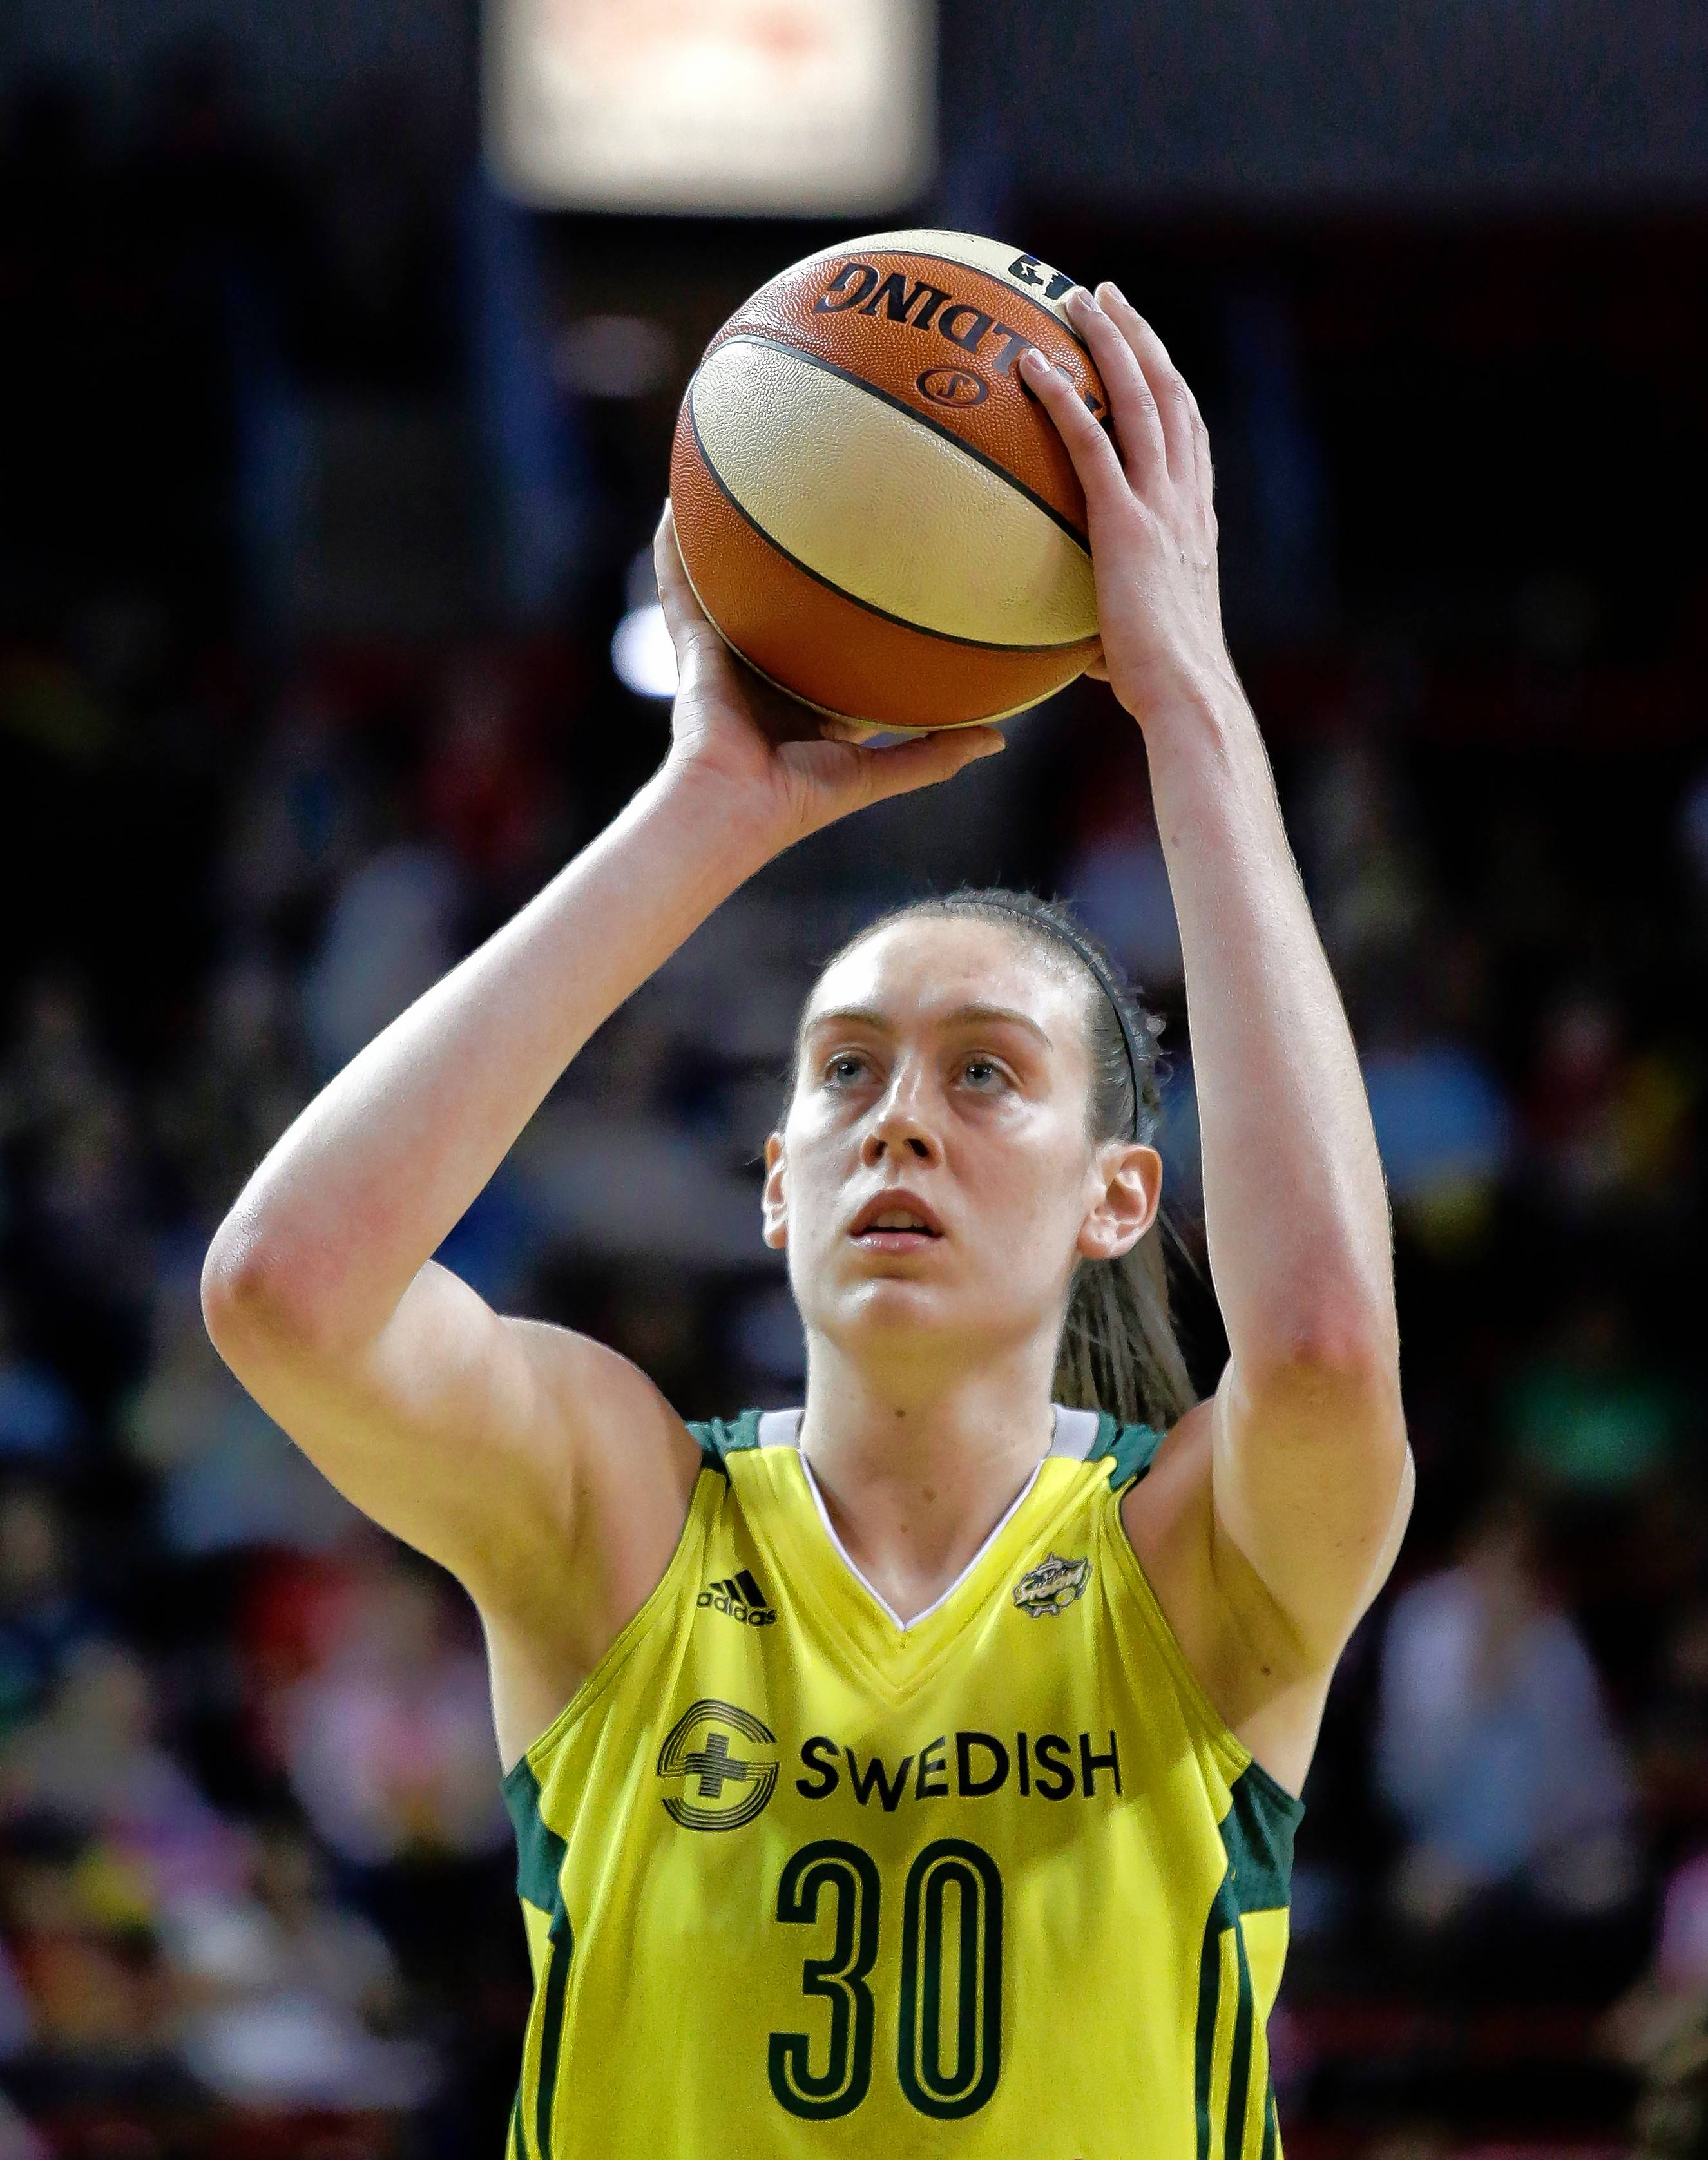 In a Players' Tribune column, WNBA star Breanna Stewart shared her personal story as a victim of sexual abuse as a child.